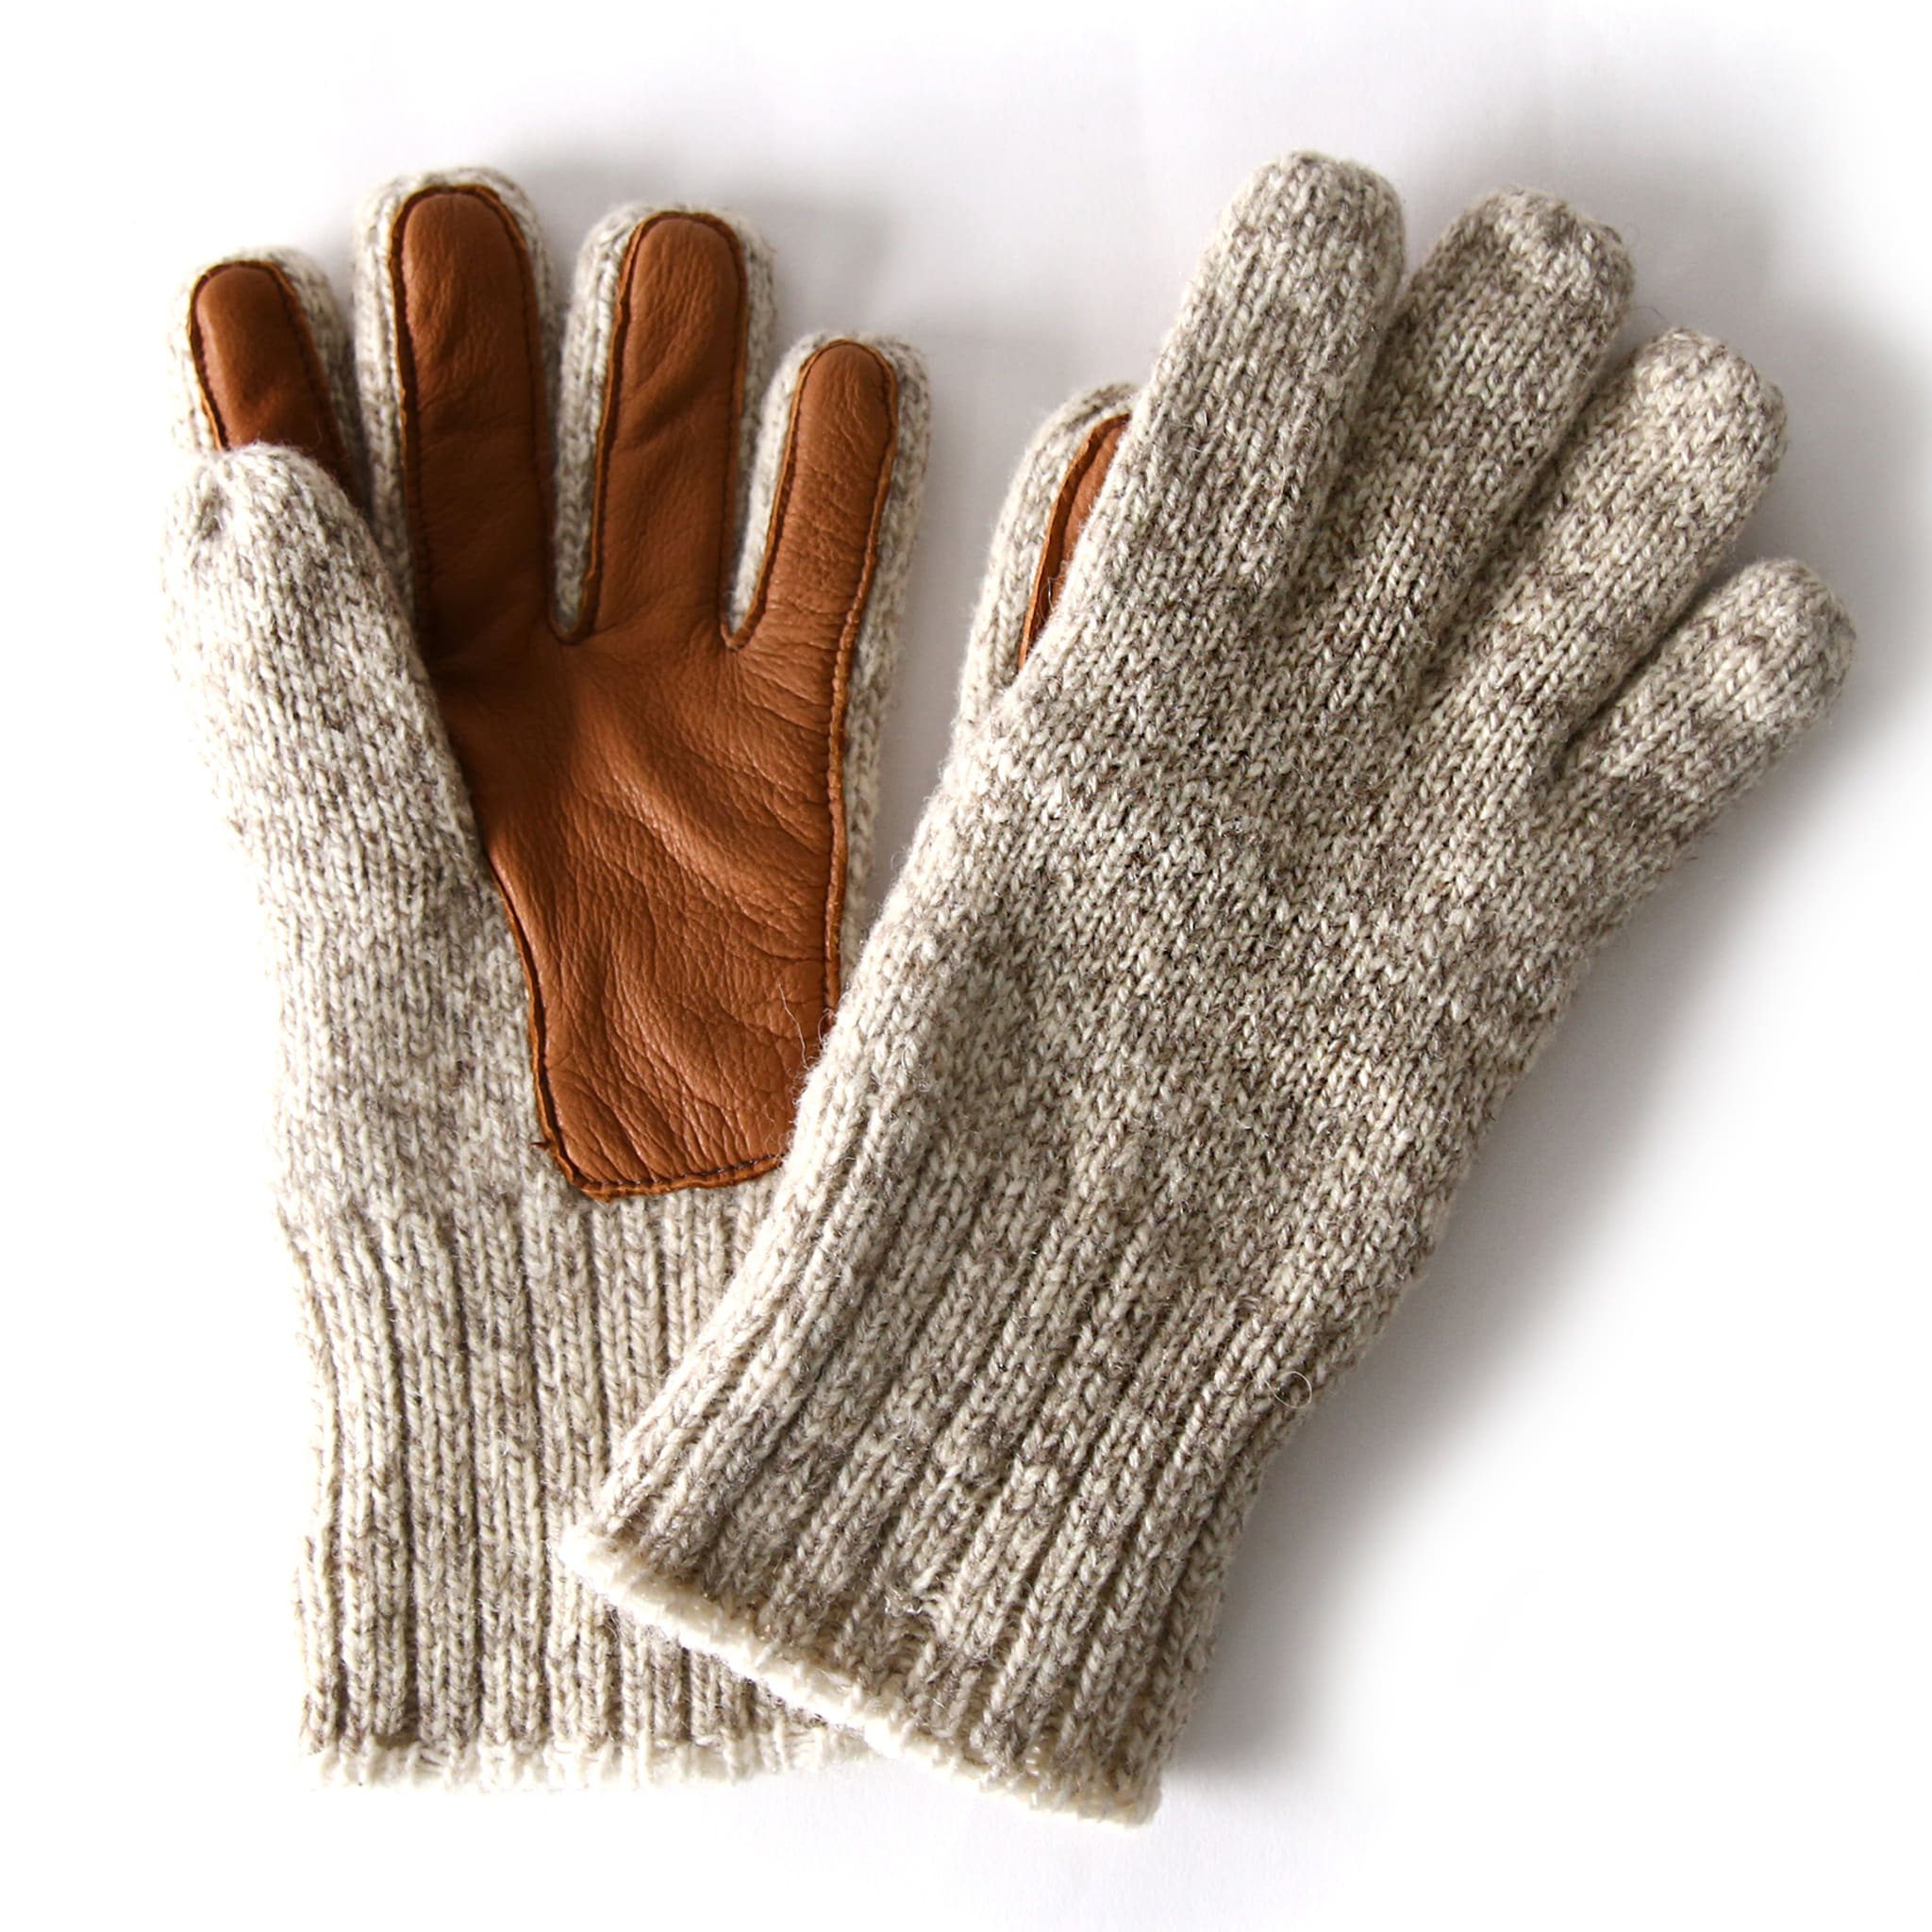 Four Layer Glove - Brown Tweed